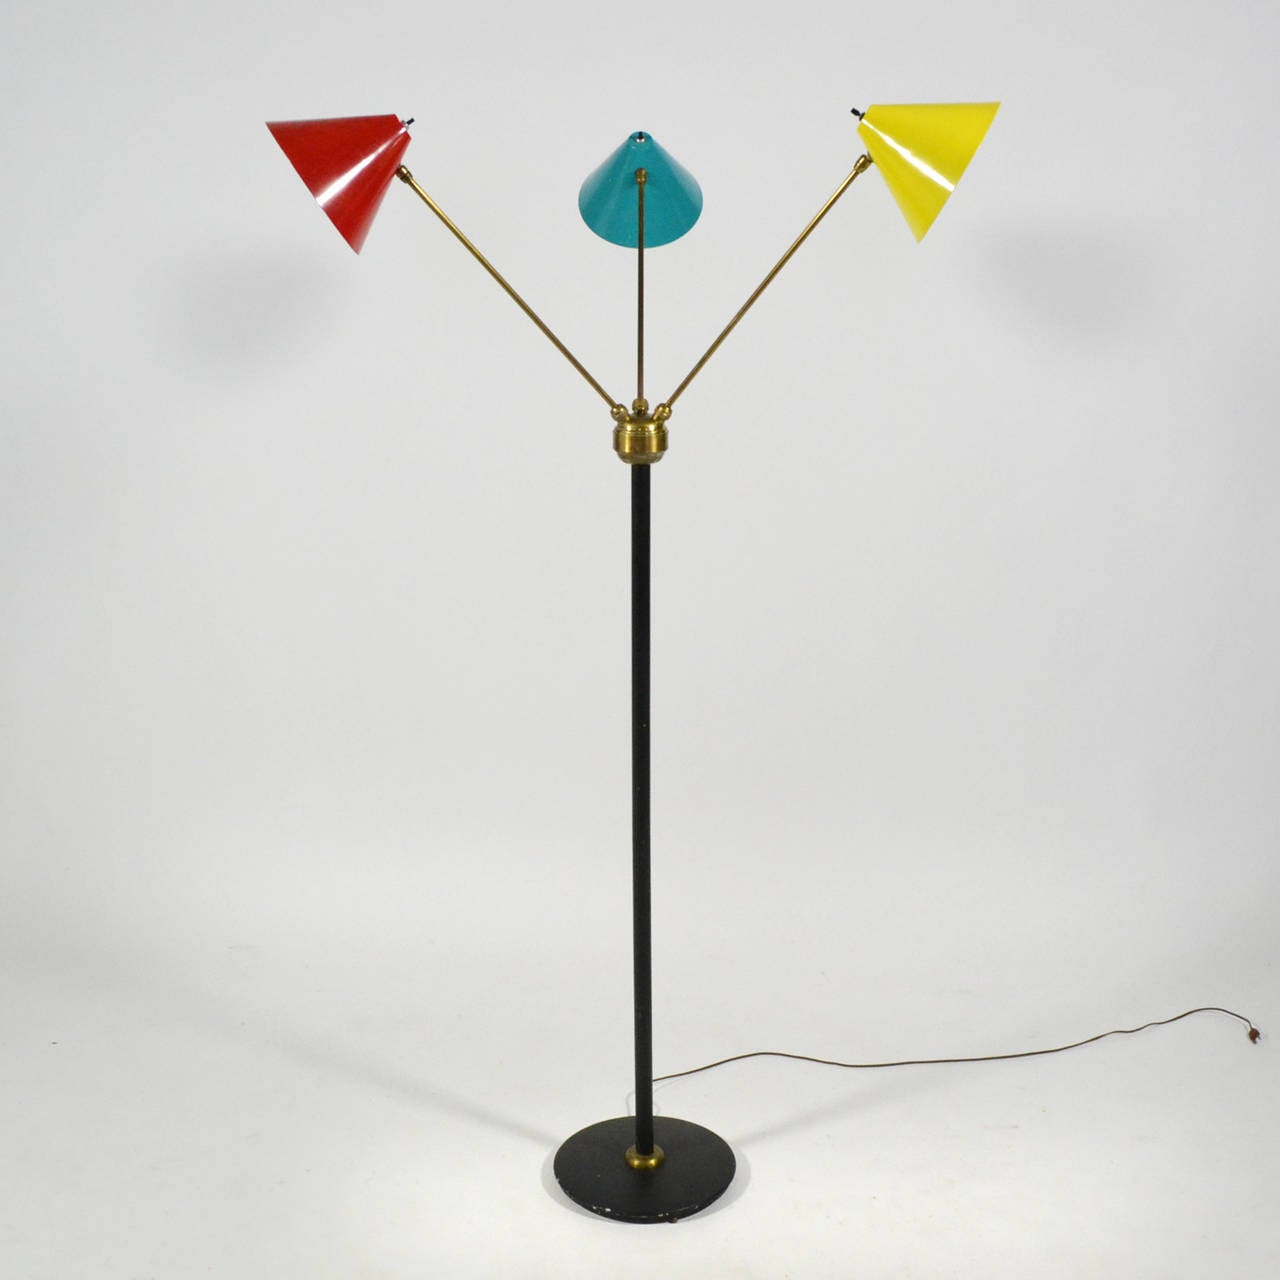 A wonderful example of Italian midcentury lighting, this three-arm floor lamp has conical-shades in red, yellow and blue attached with brass arms to a black central stem and base. With great versatility, the lamp offers a wide array of lighting